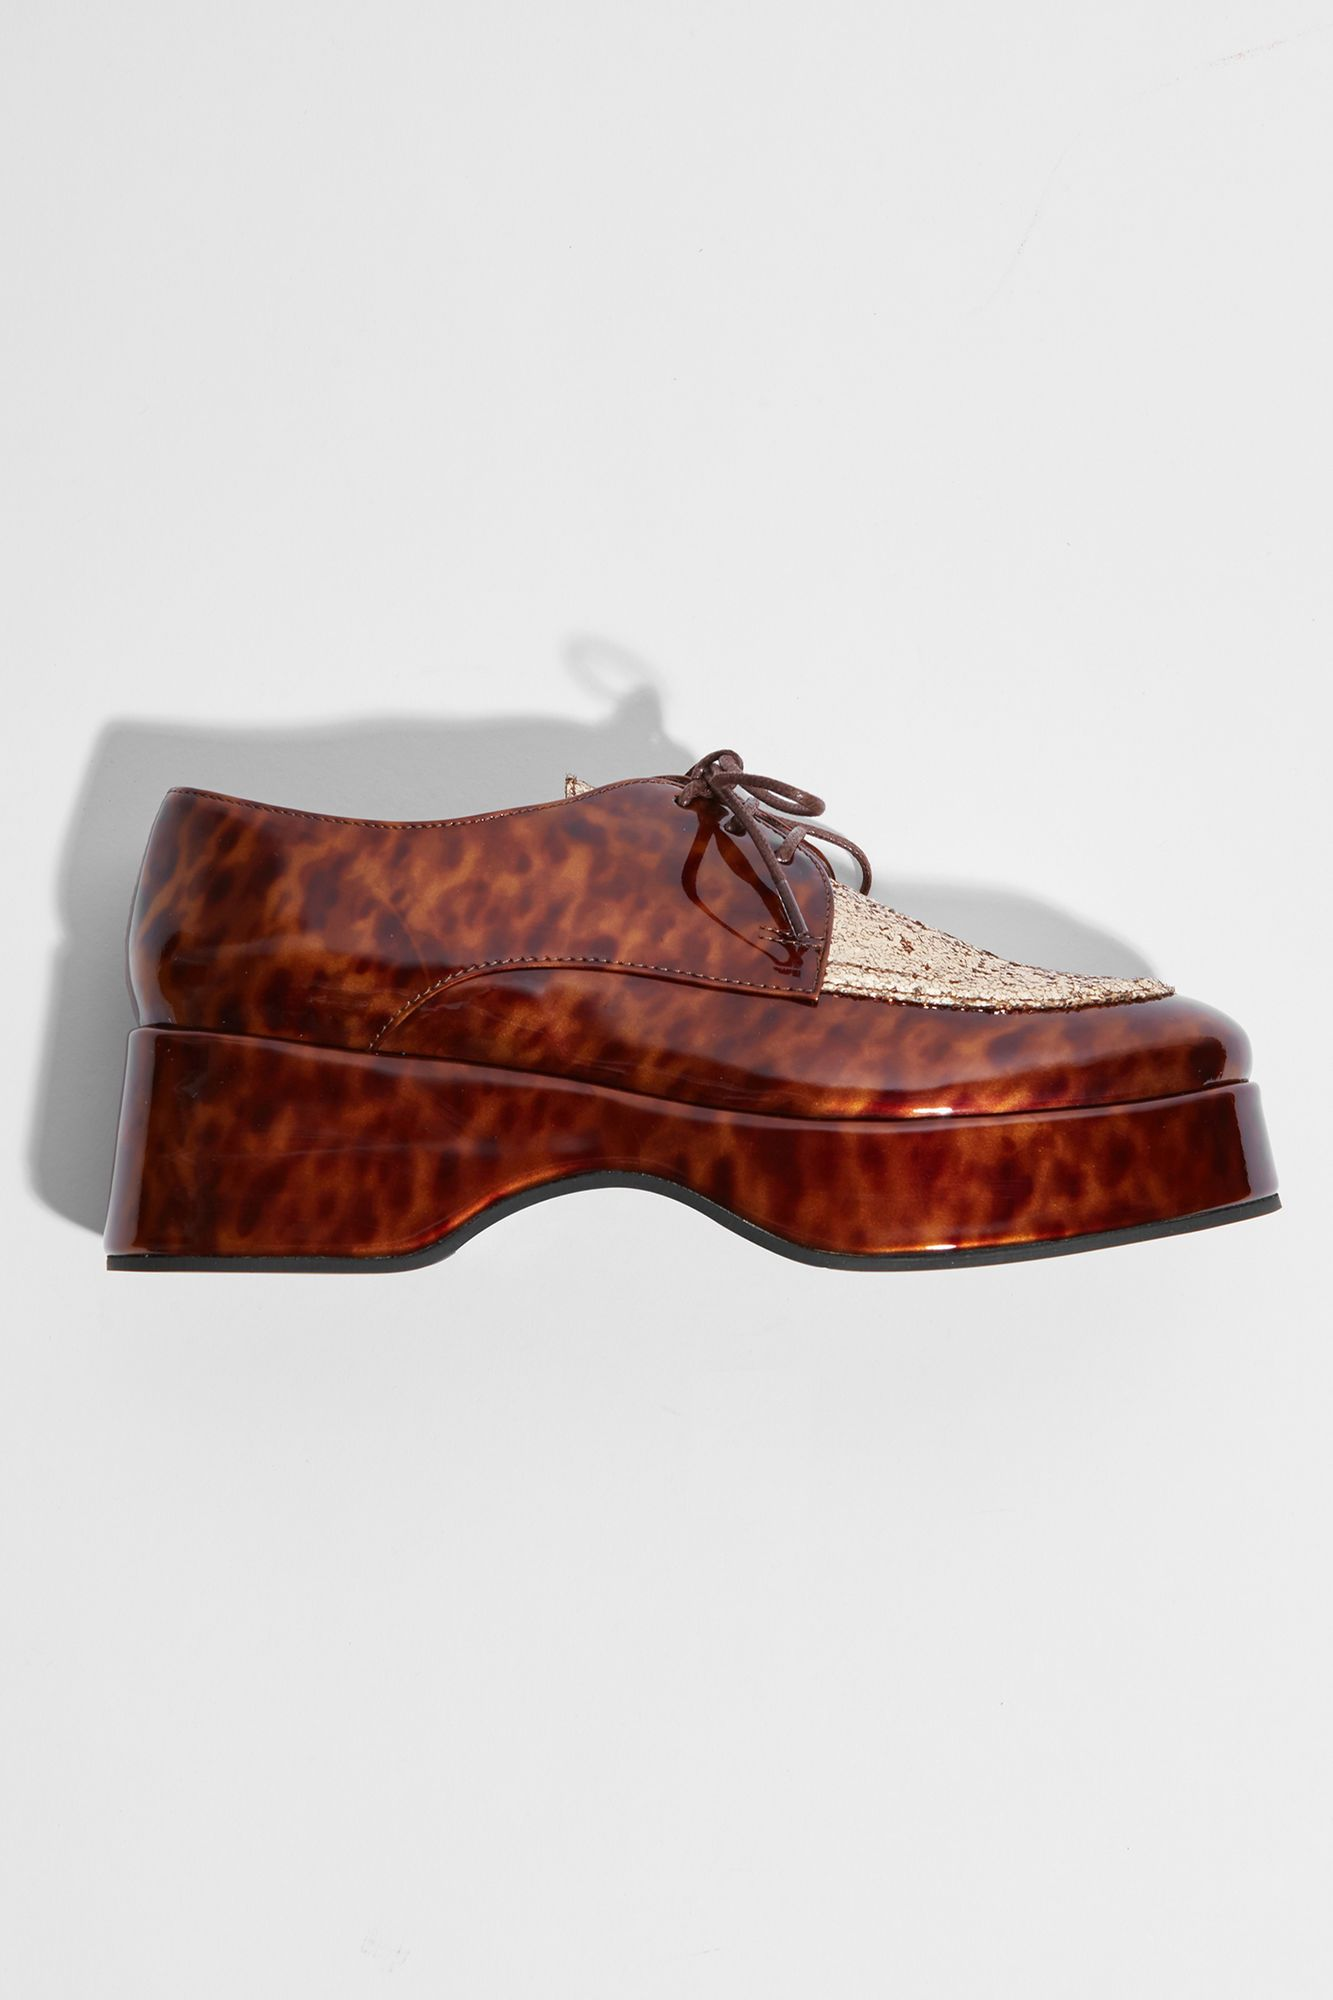 9154f1f1a3be 1492006442 Amelie Pichard, Derby Shoes, Tortoise, Oxford Shoes, Tortoise  Shell, Patent